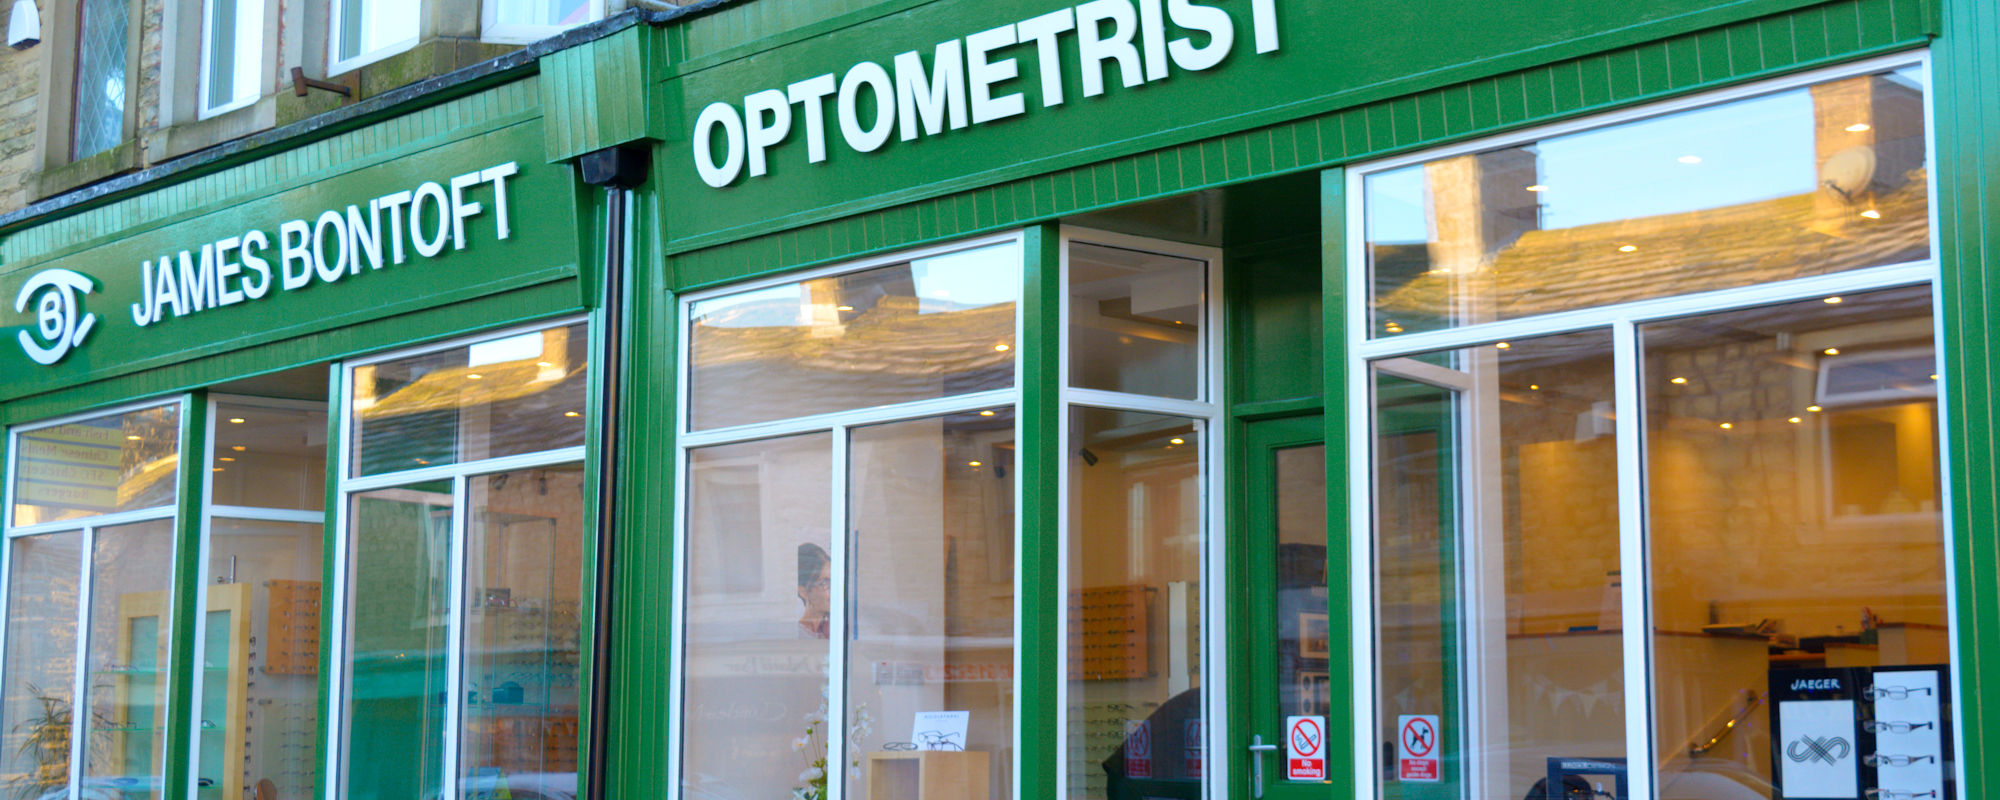 Foulridge's local optician - James Bontoft in Barnoldswick